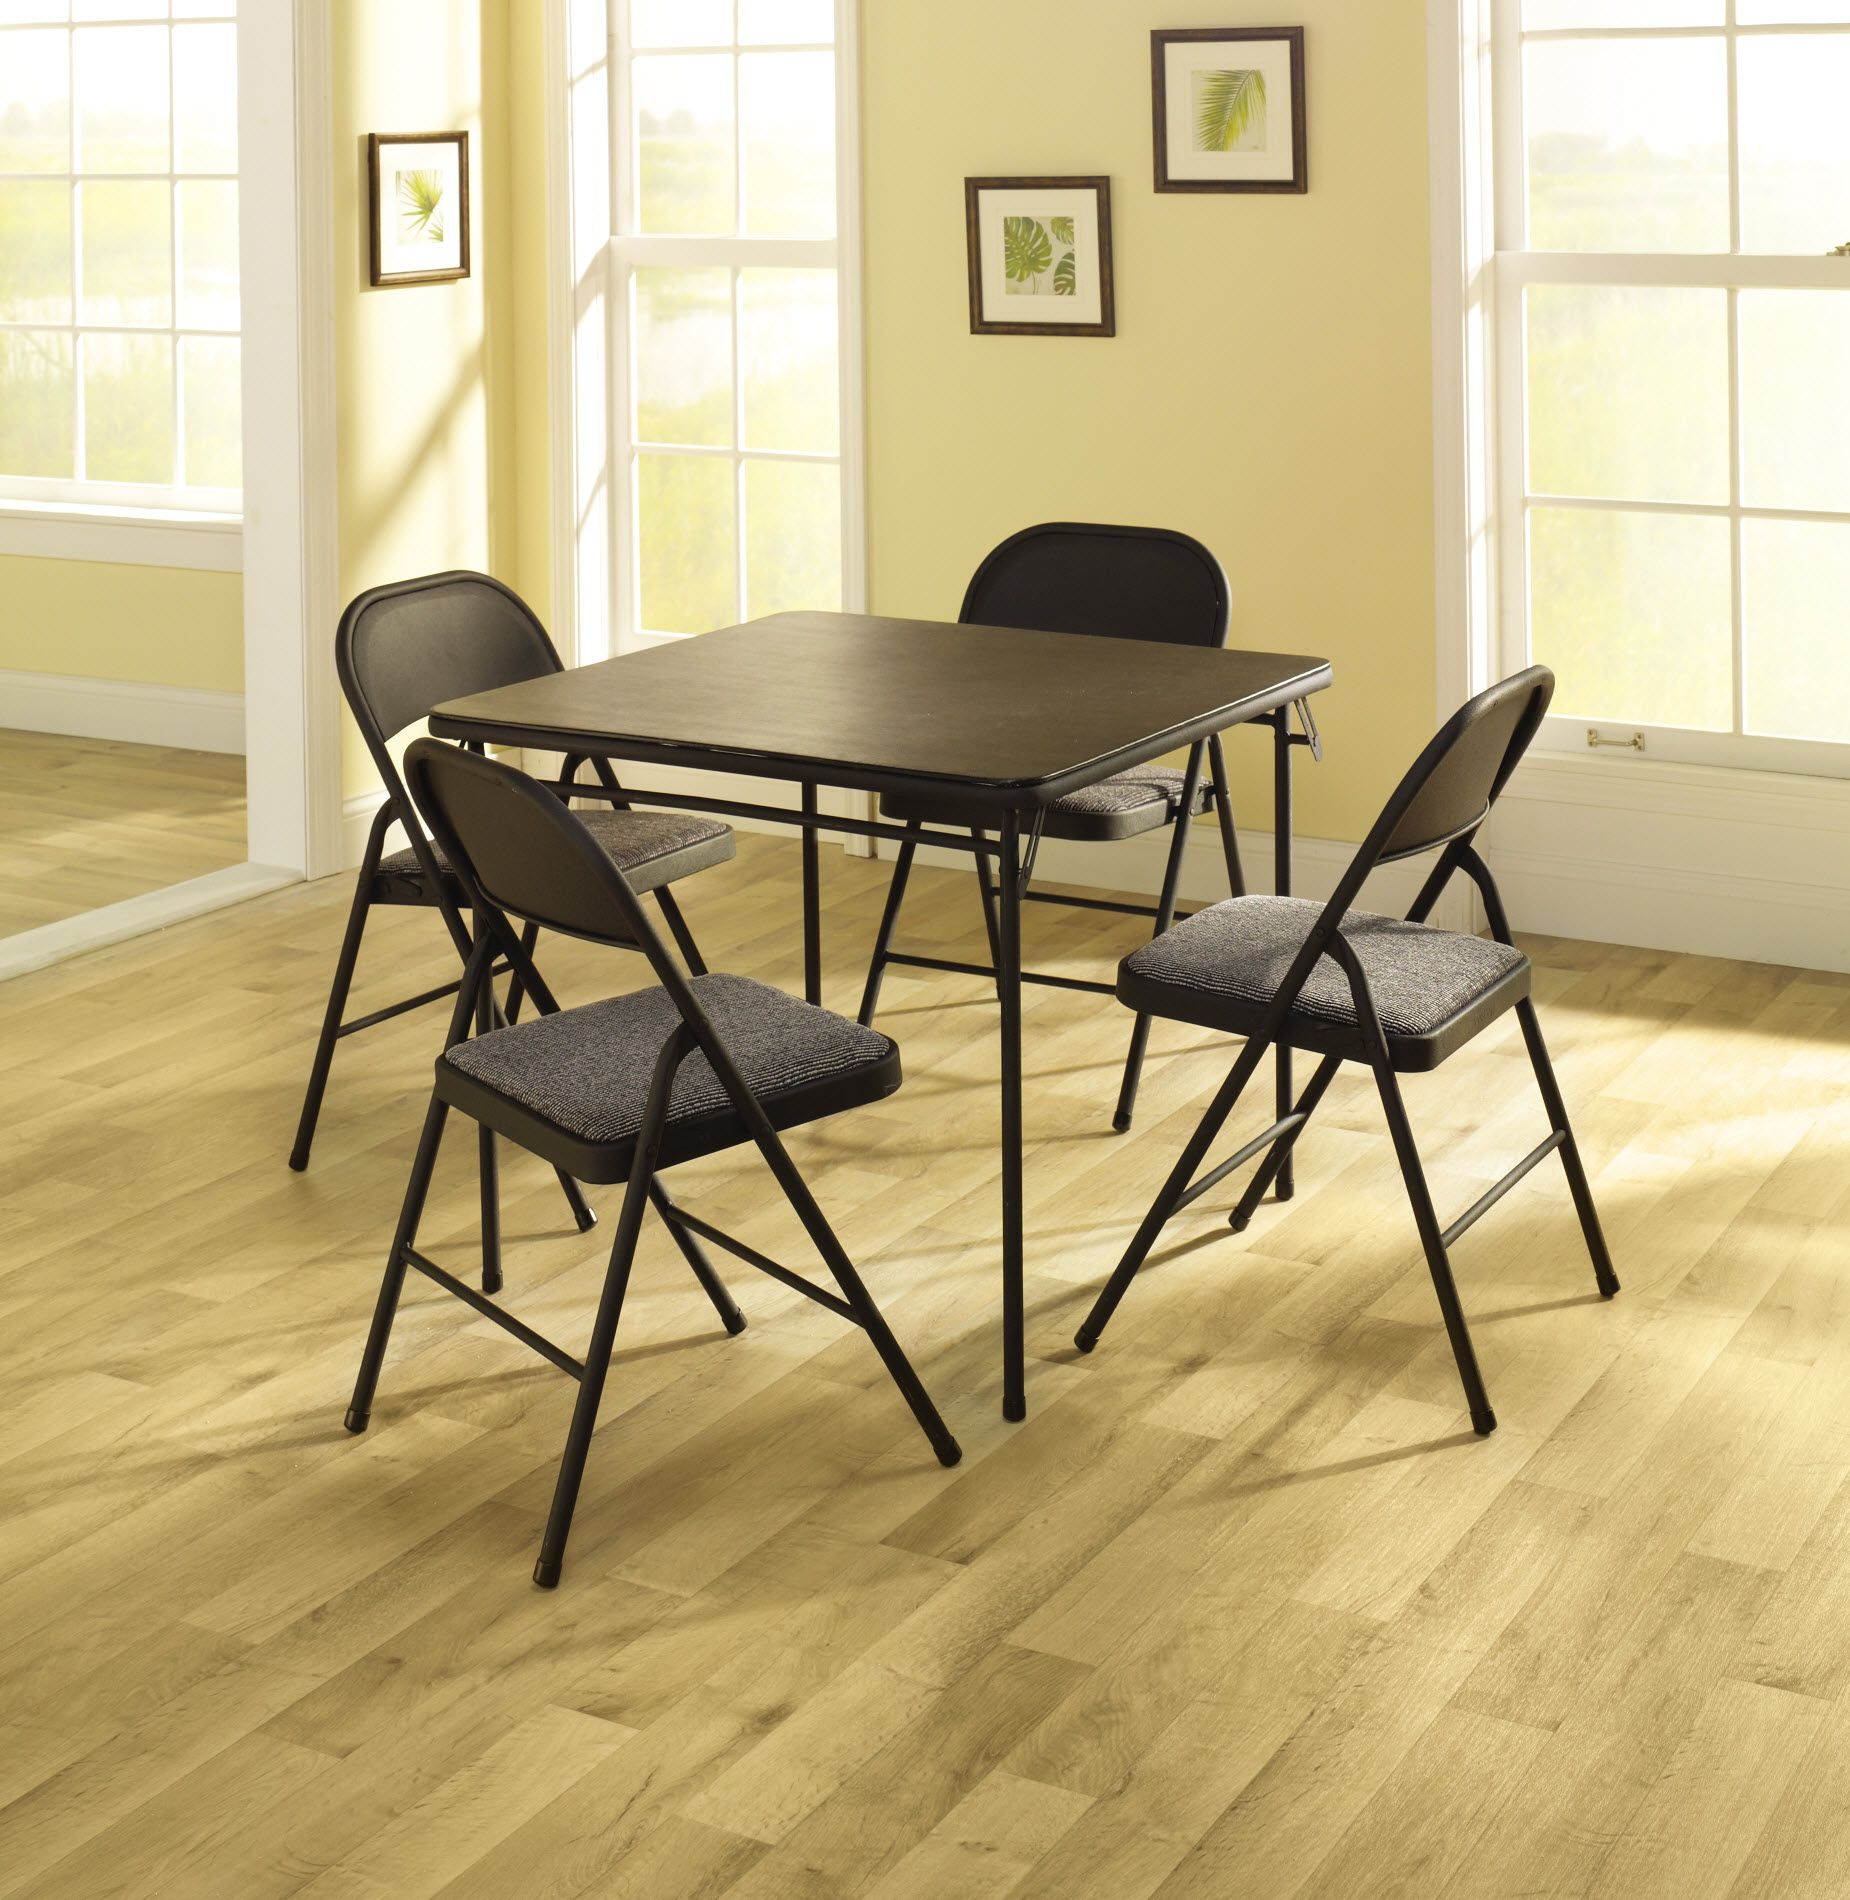 Cosco 5 Piece Set with Vinyl Table Top and Fabric Chairs